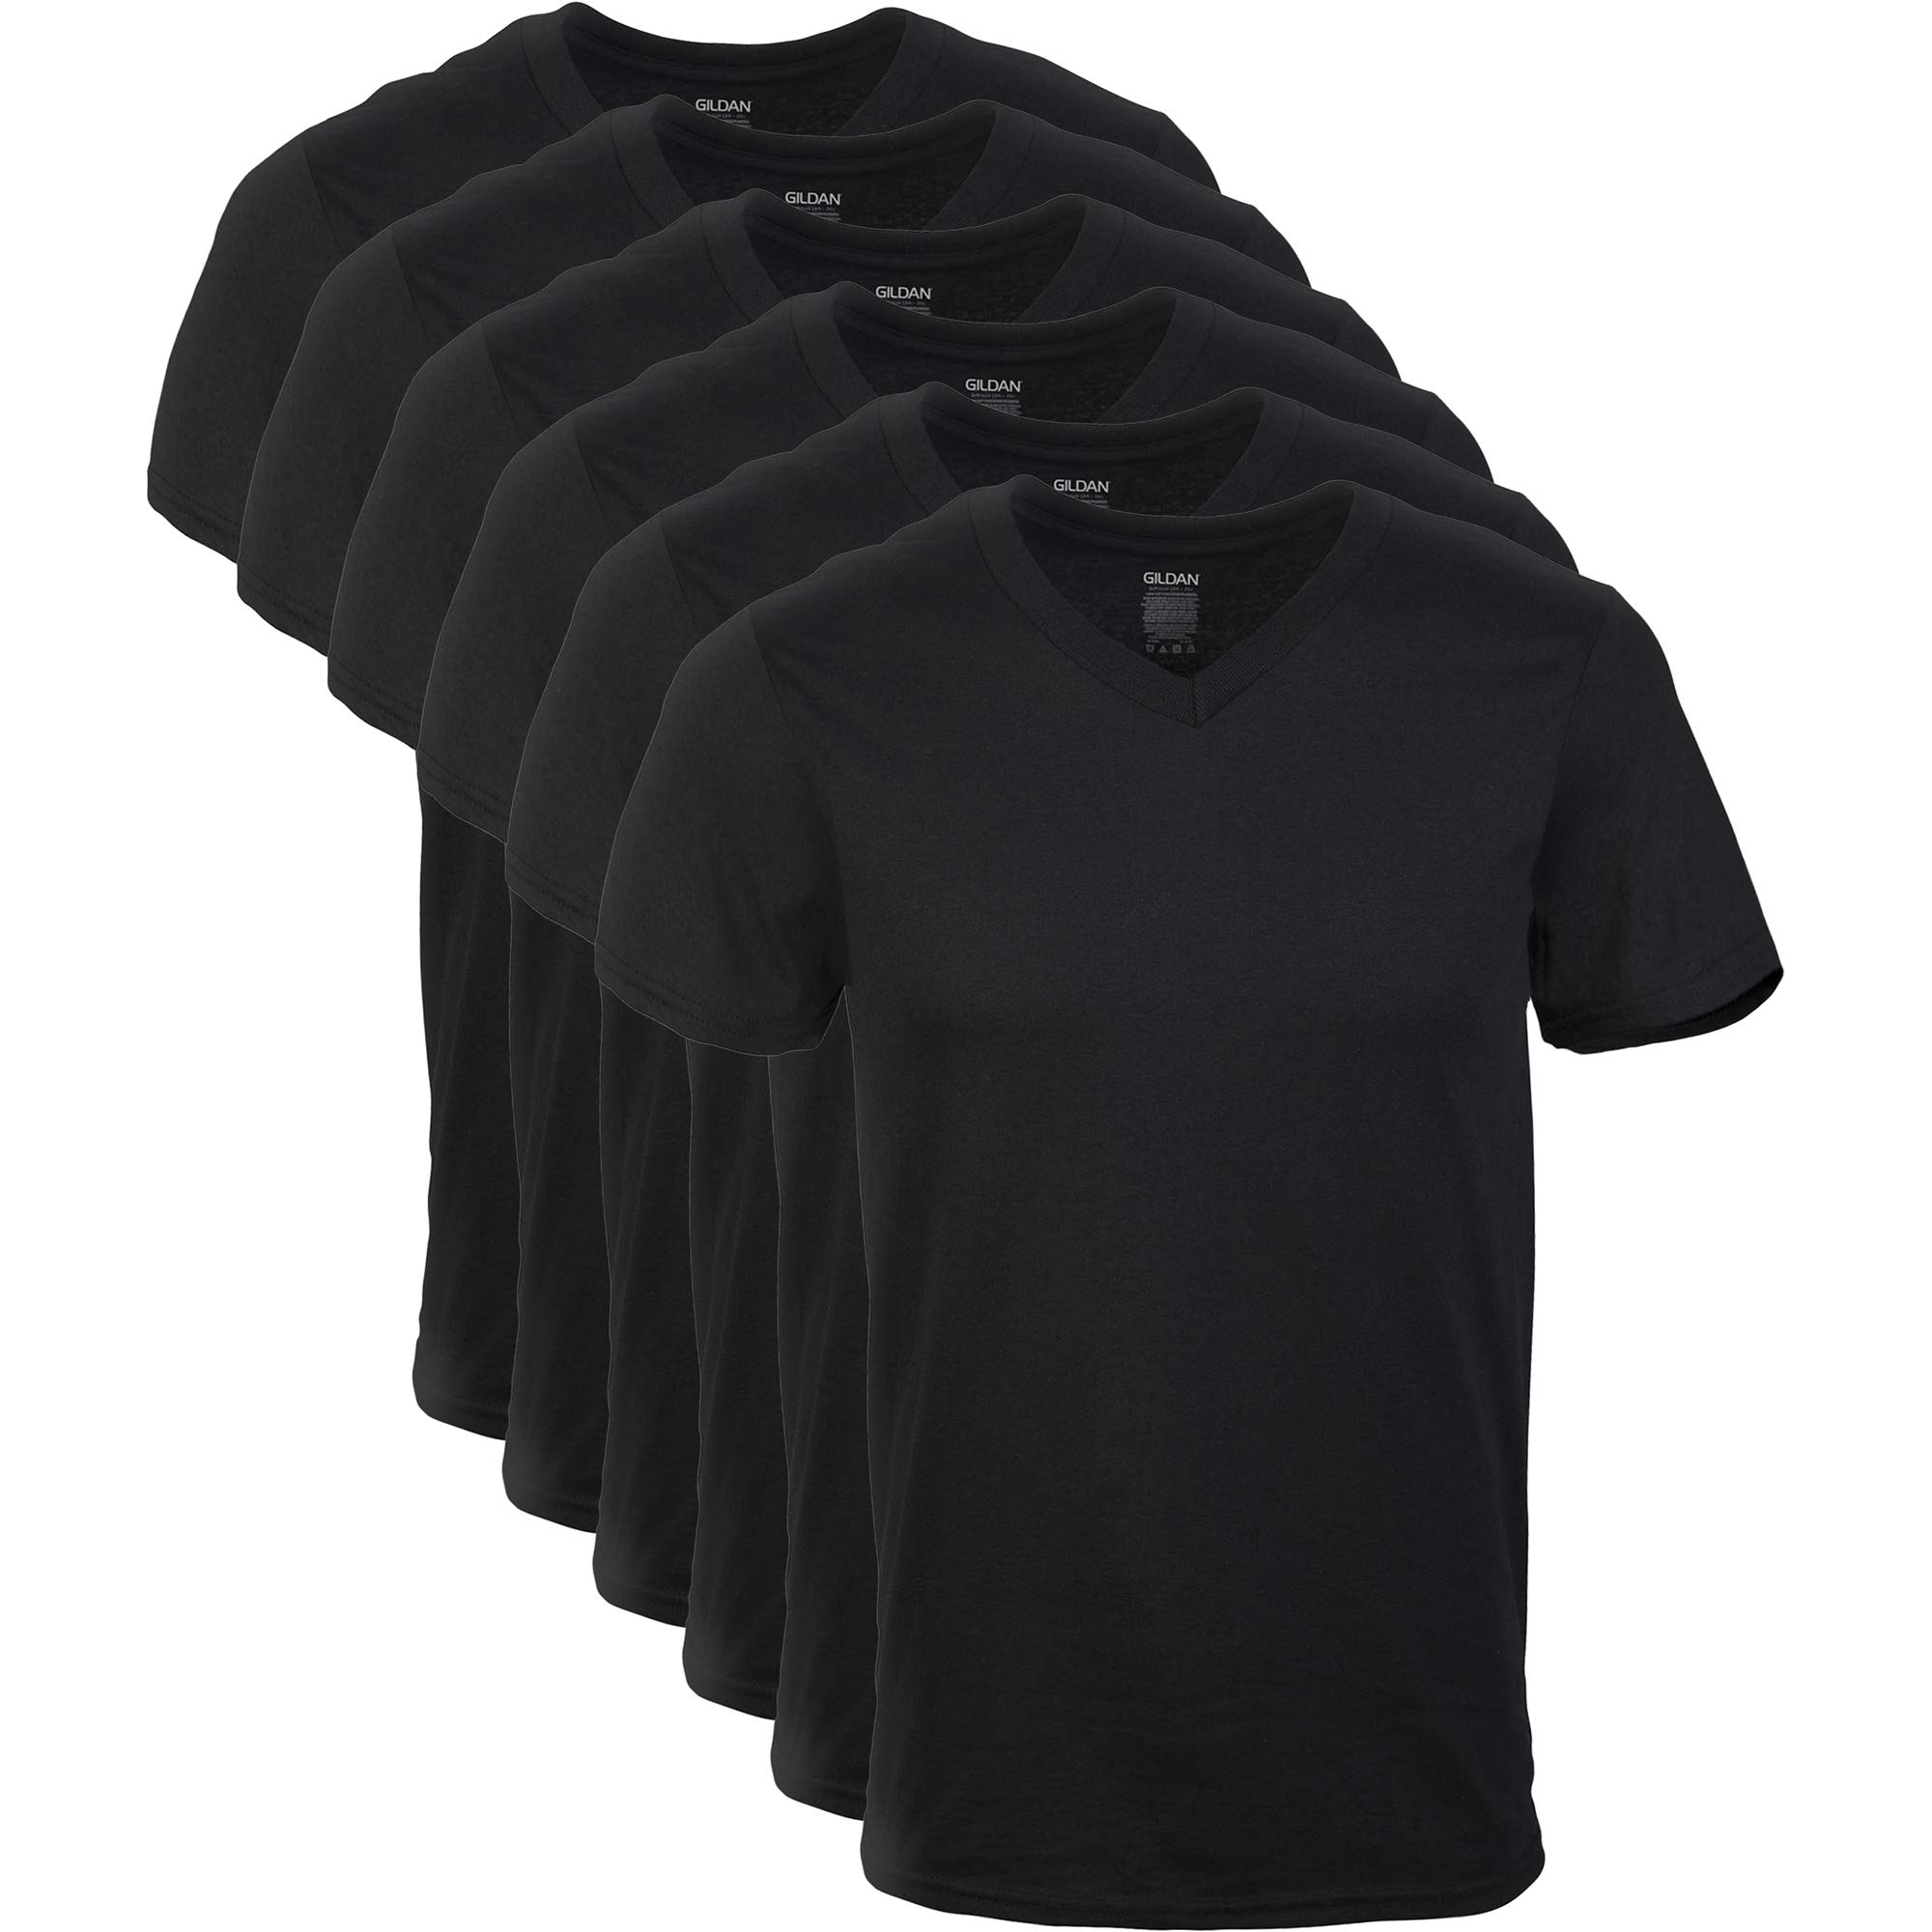 Gildan Men's V-Neck T-Shirts Multipacks, Black 6 Pack, Large by Gildan